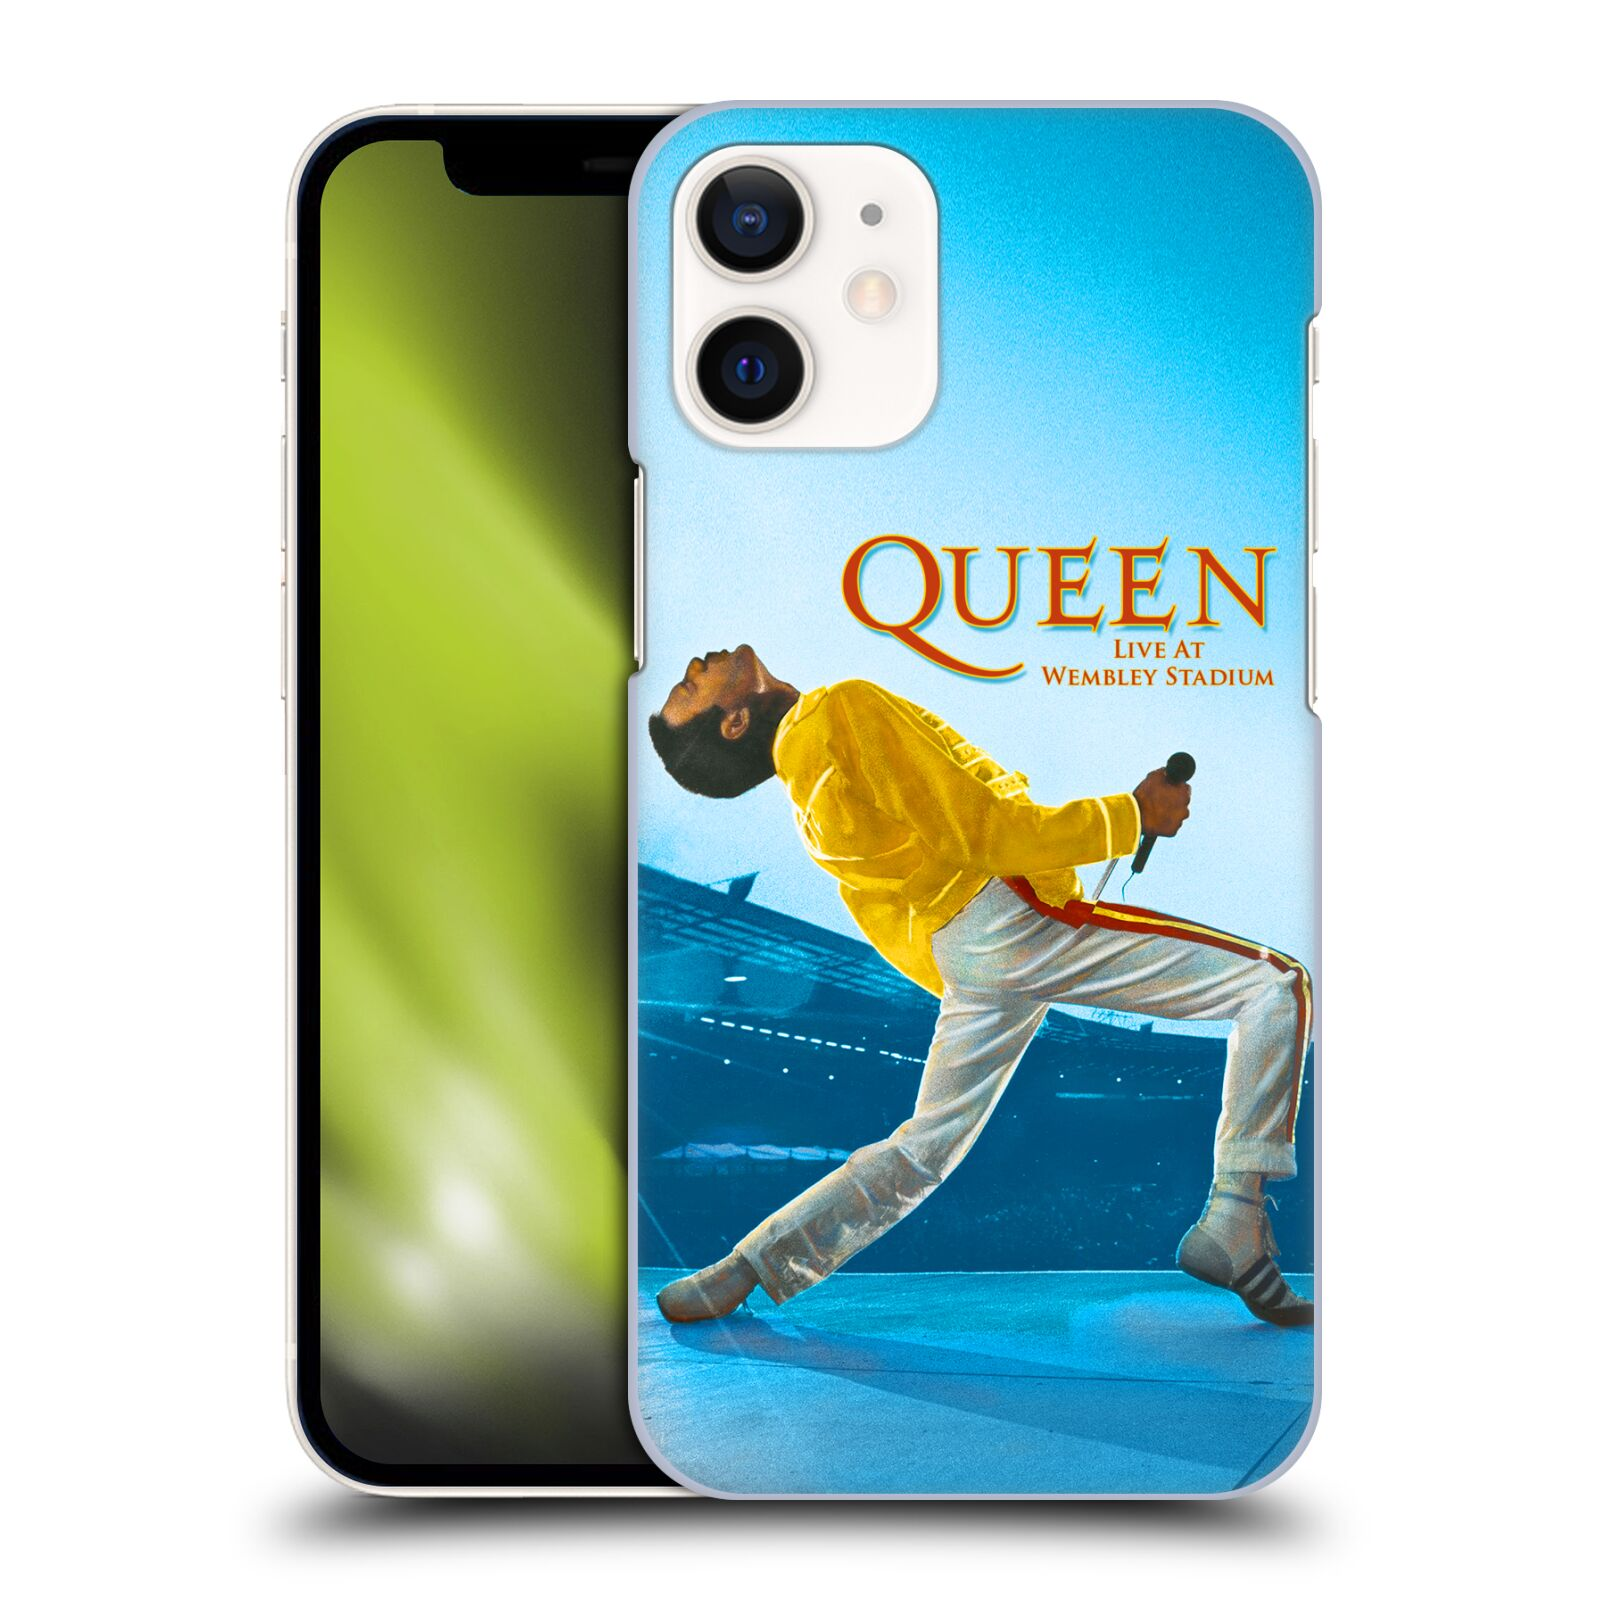 Plastové pouzdro na mobil Apple iPhone 12 Mini - Head Case - Queen - Freddie Mercury